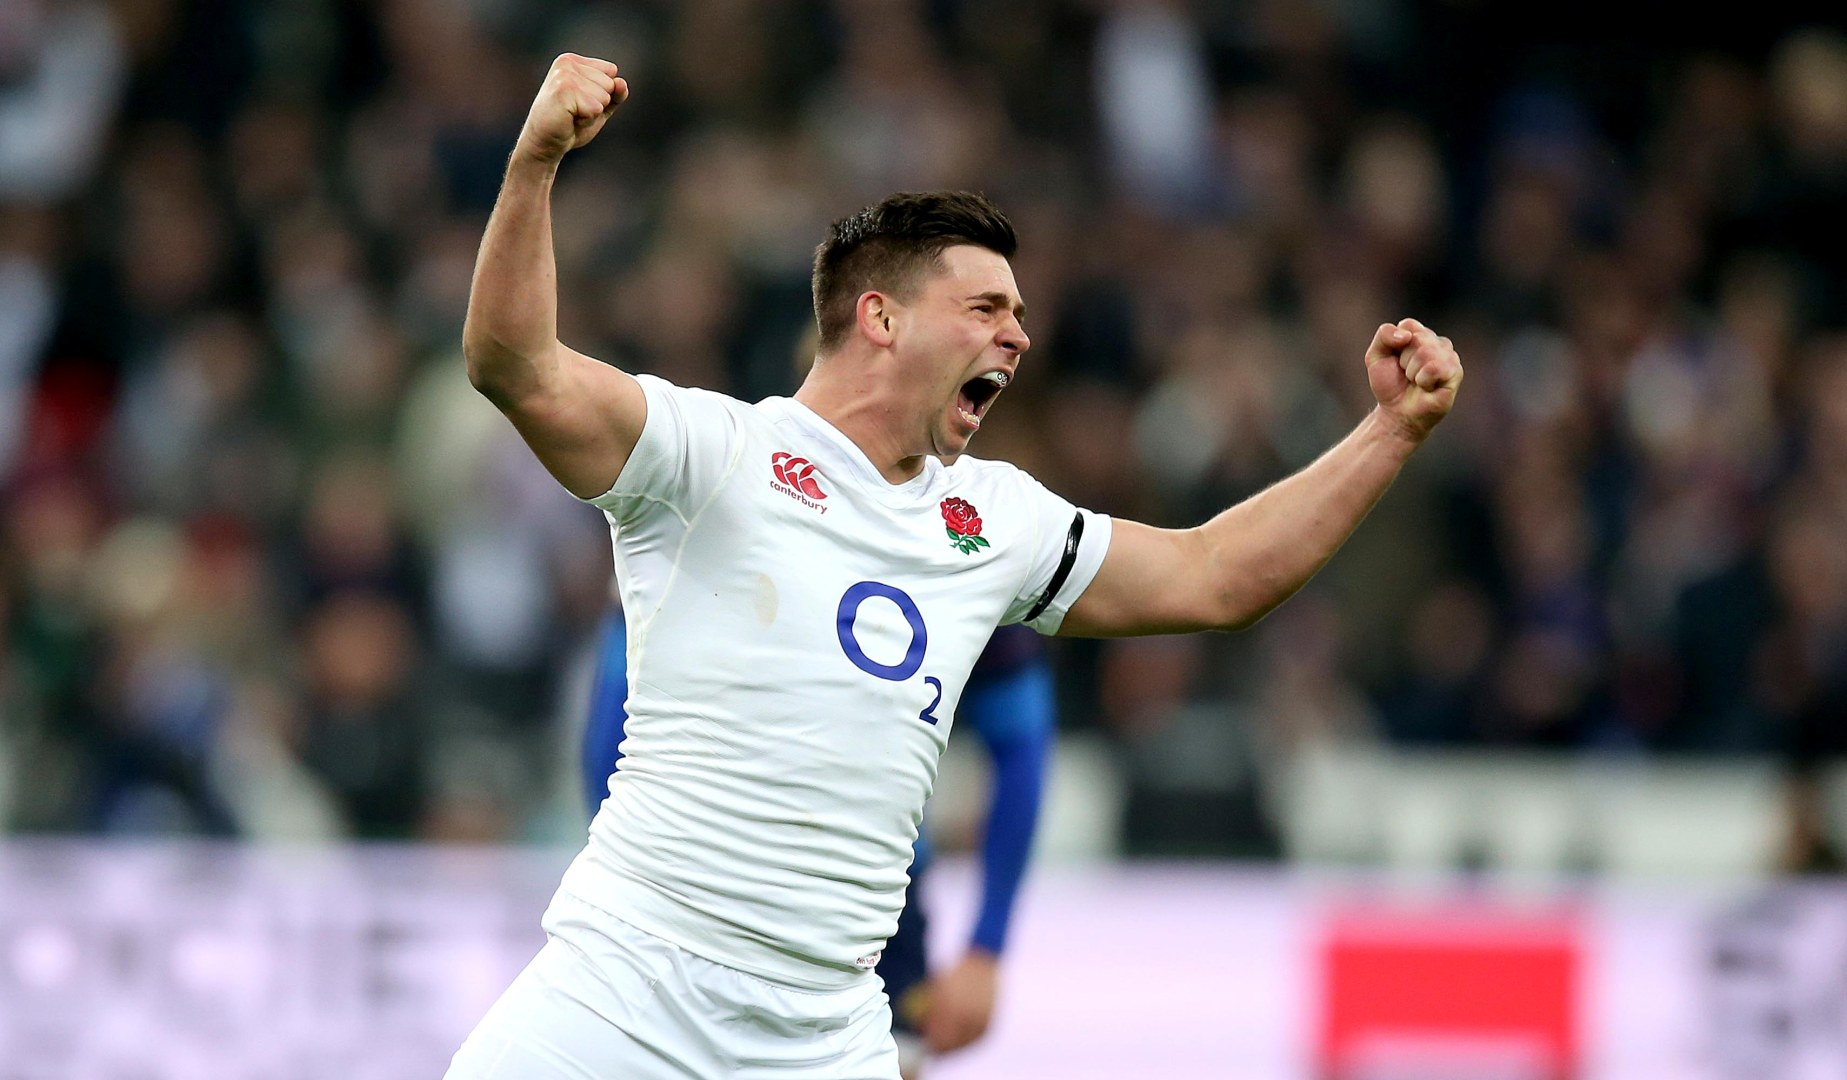 Youngs impressed with England's calmness